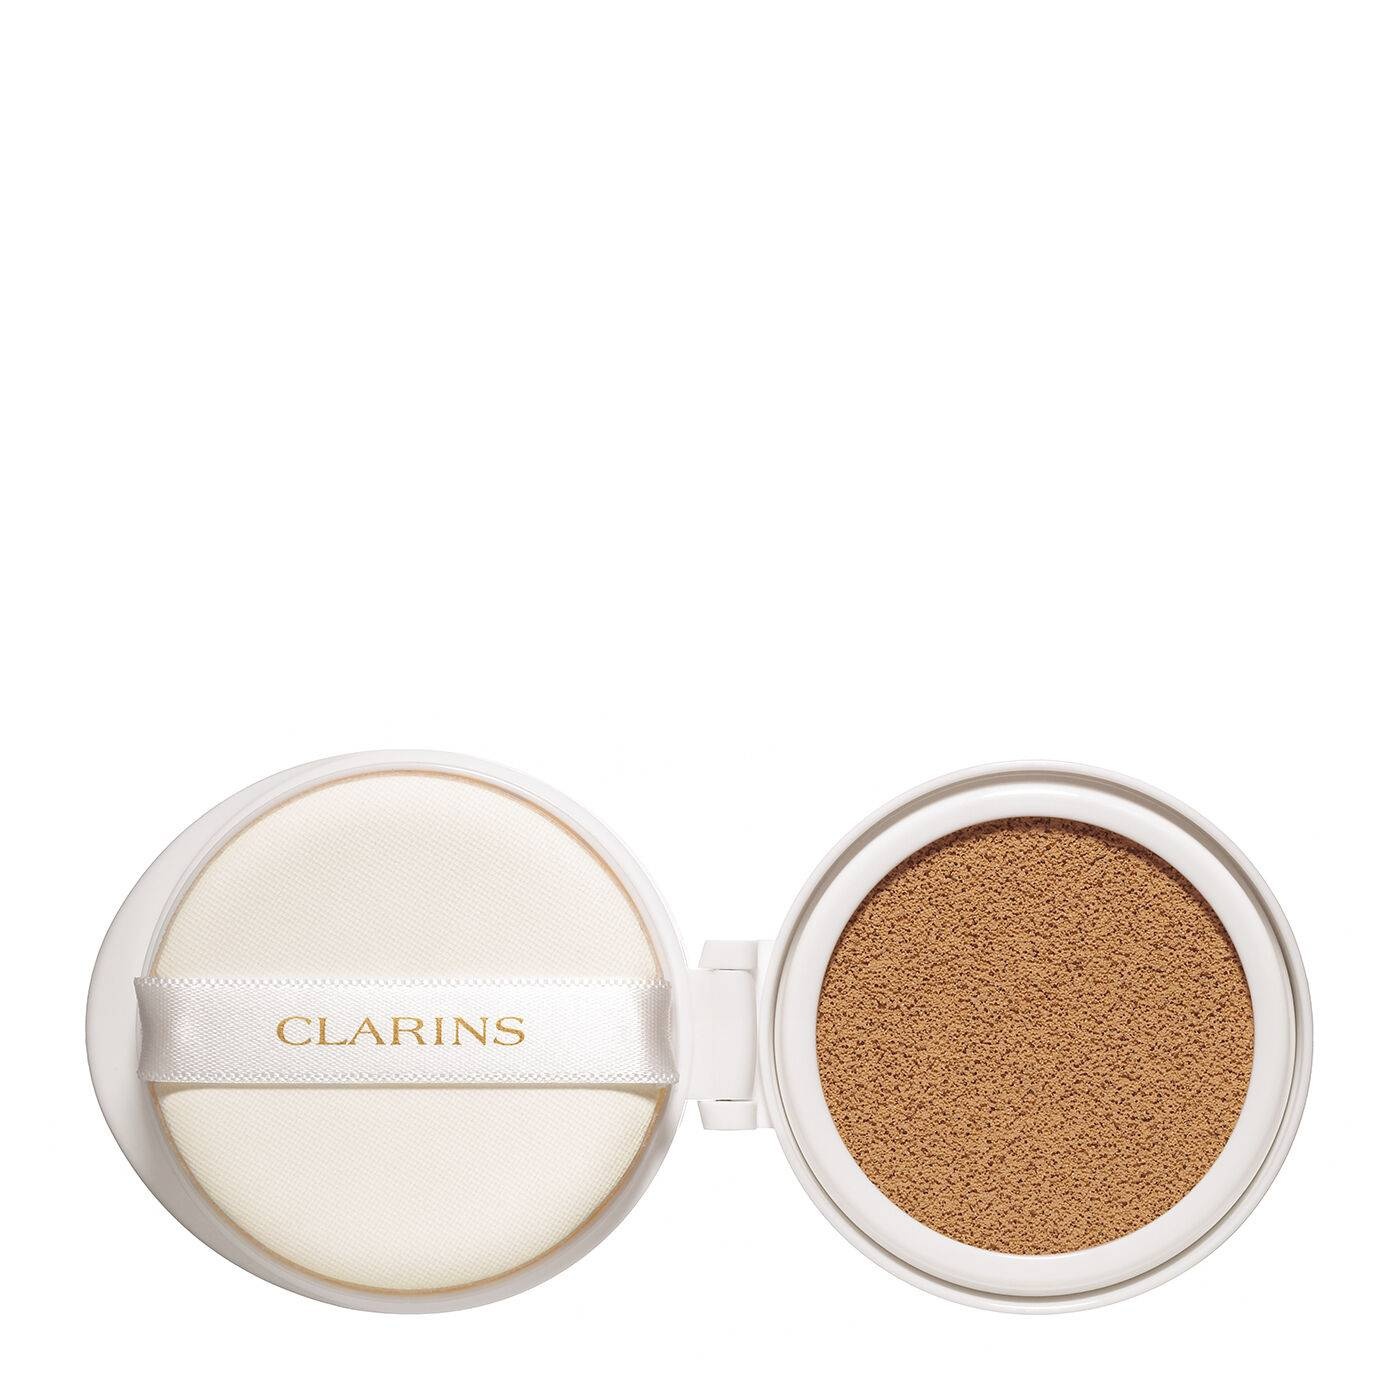 Clarins Refill - Everlasting Cushion Foundation+